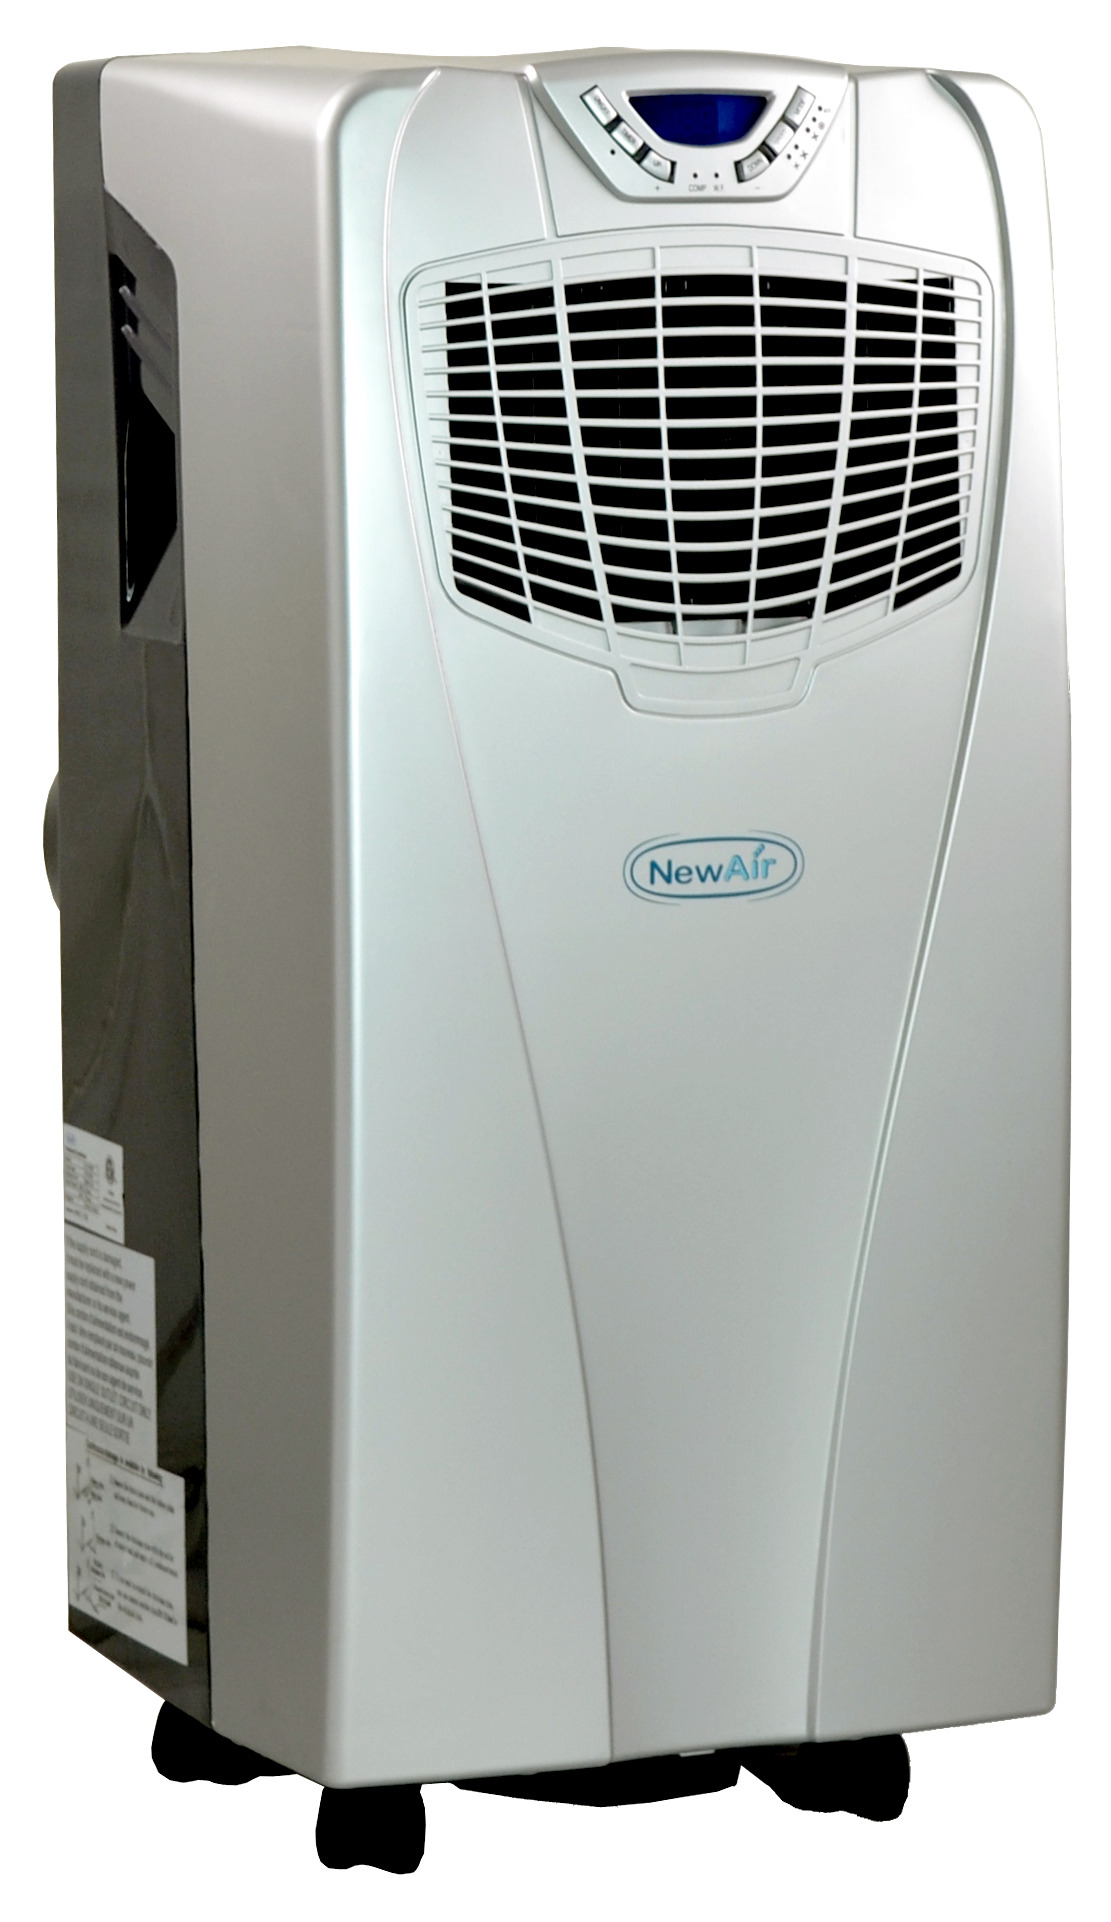 Air Conditioner Heater Window Unit Walmart Lovely Portable Air Conditioner